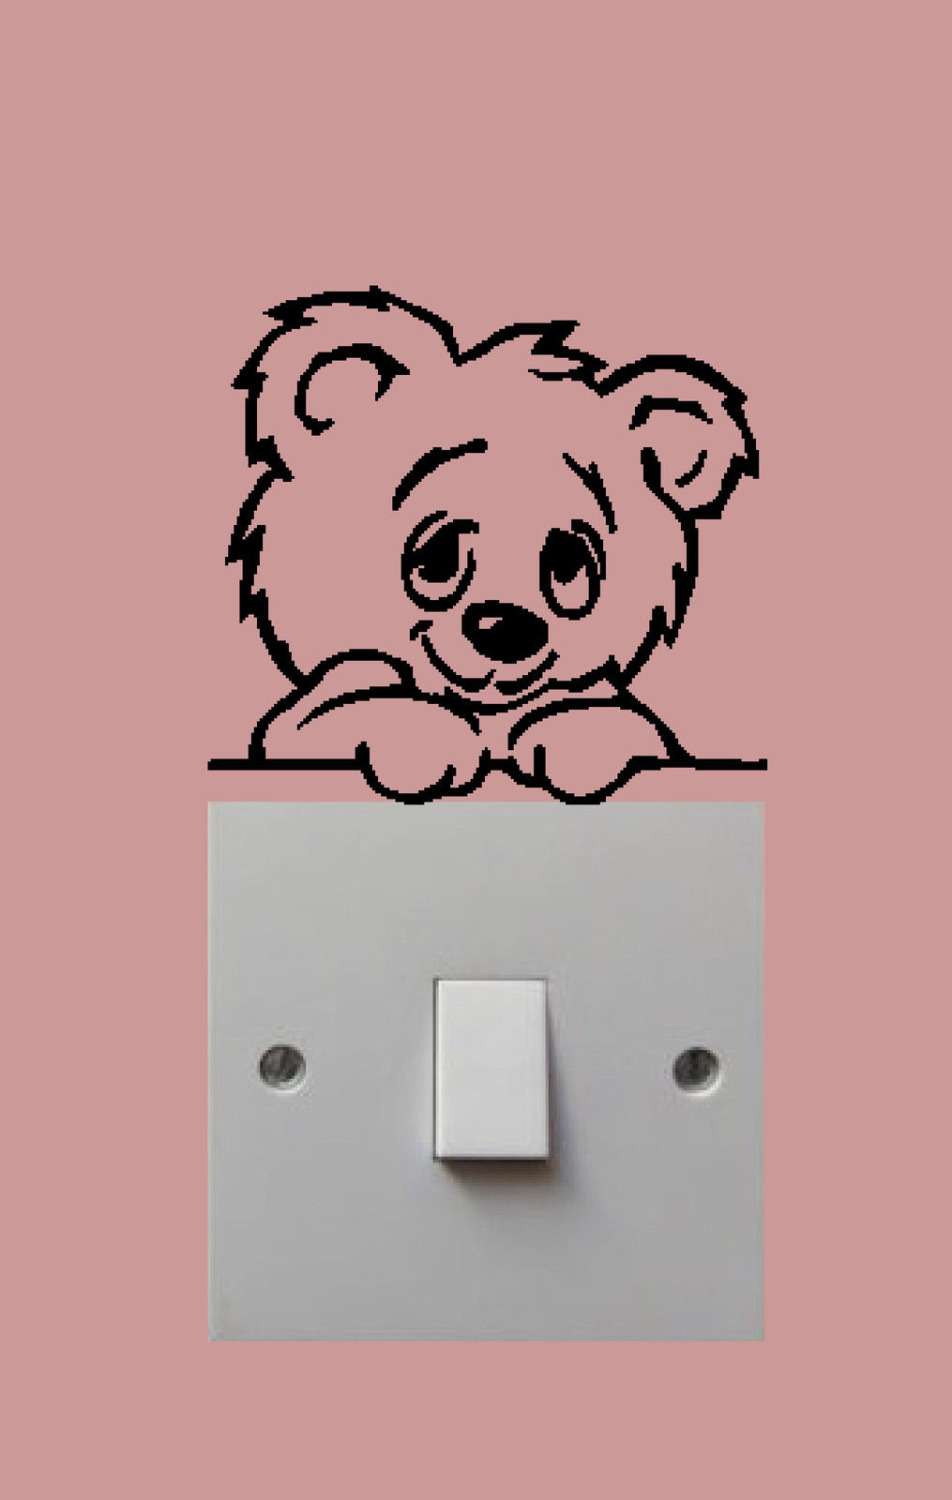 Teddy Bear Light Switch Stickers Decor Cartoon Wall Decals Art Mural